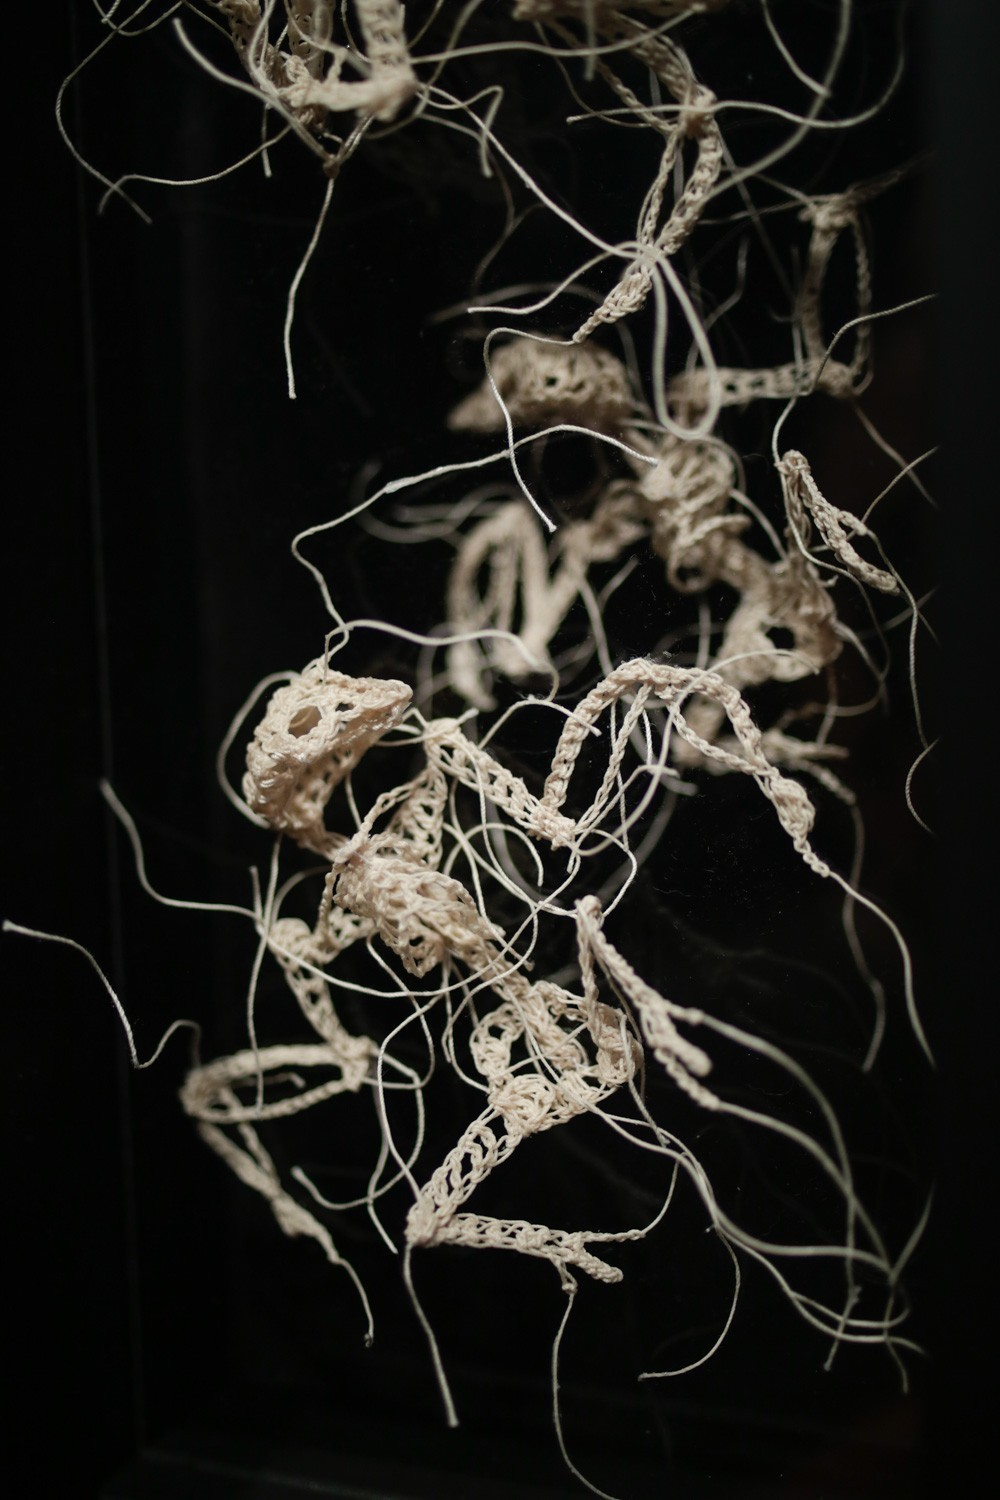 Сrocheted Brittle Skeletons by Caitlin McCormack